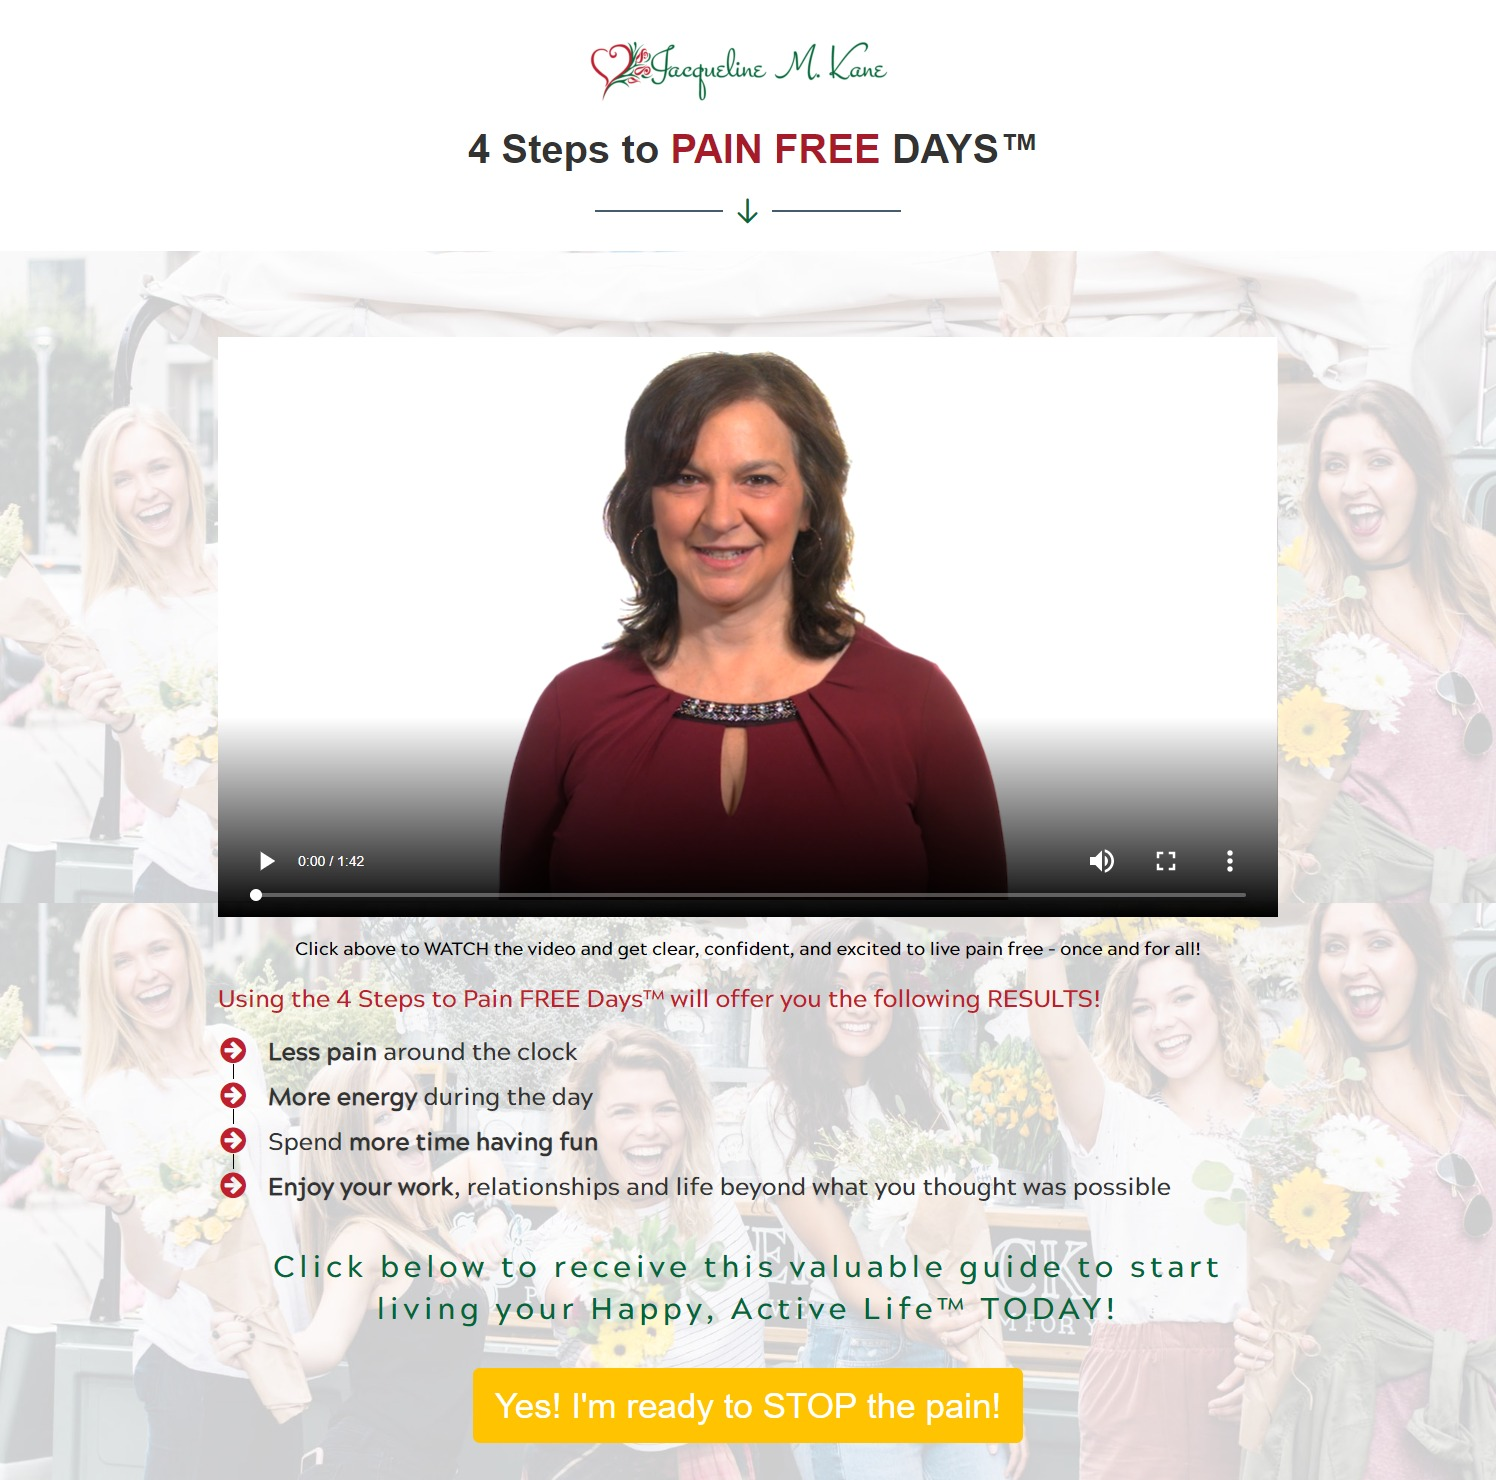 4 steps to Pain Free Days by Jacqueline Kane